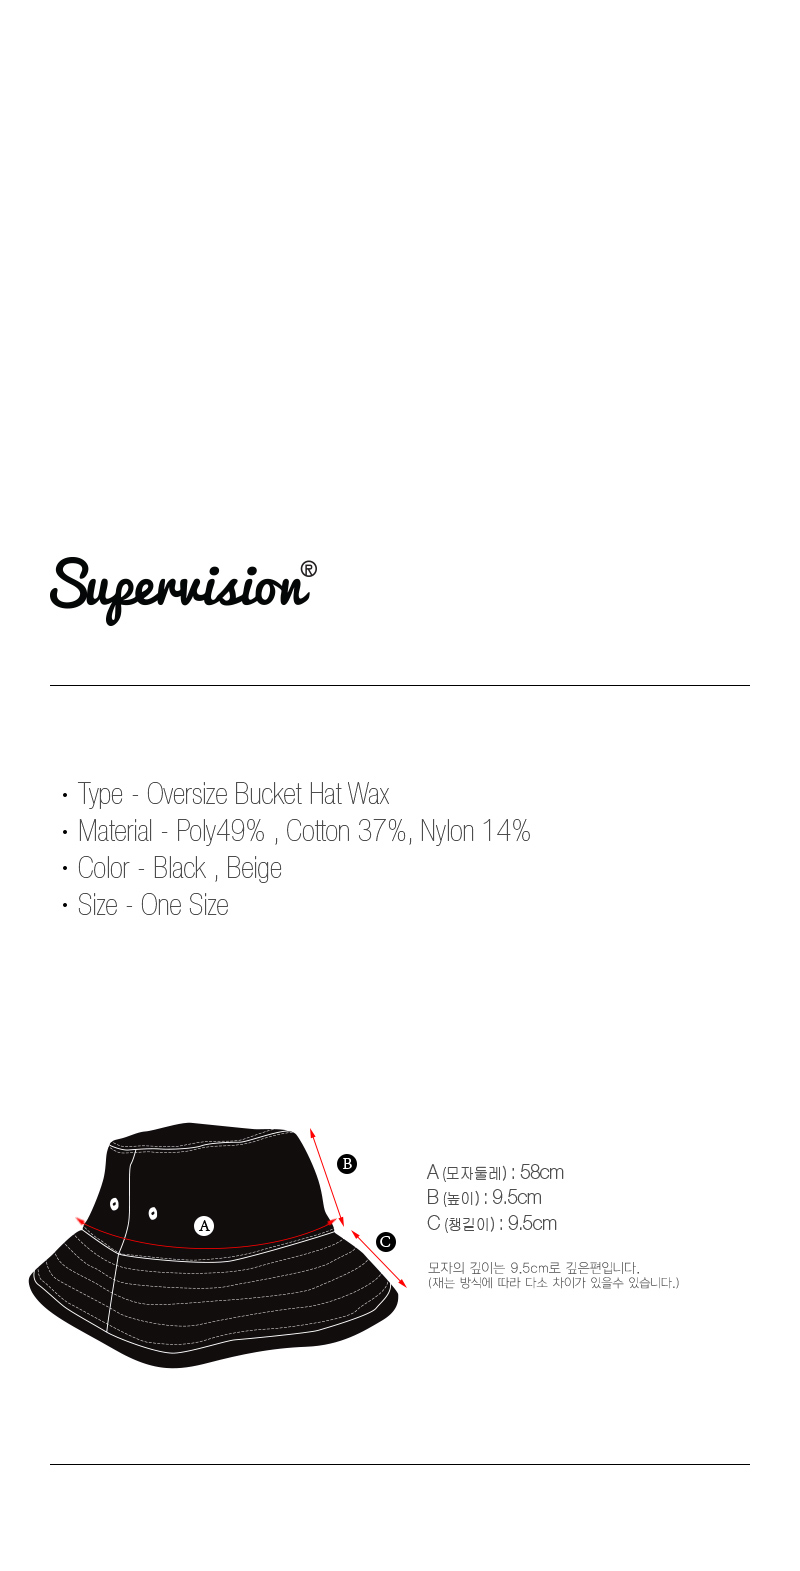 슈퍼비젼 SUPERVISION OVERSIZE BUCKET HAT WAX BLACK - GVG bf0e9536ef85